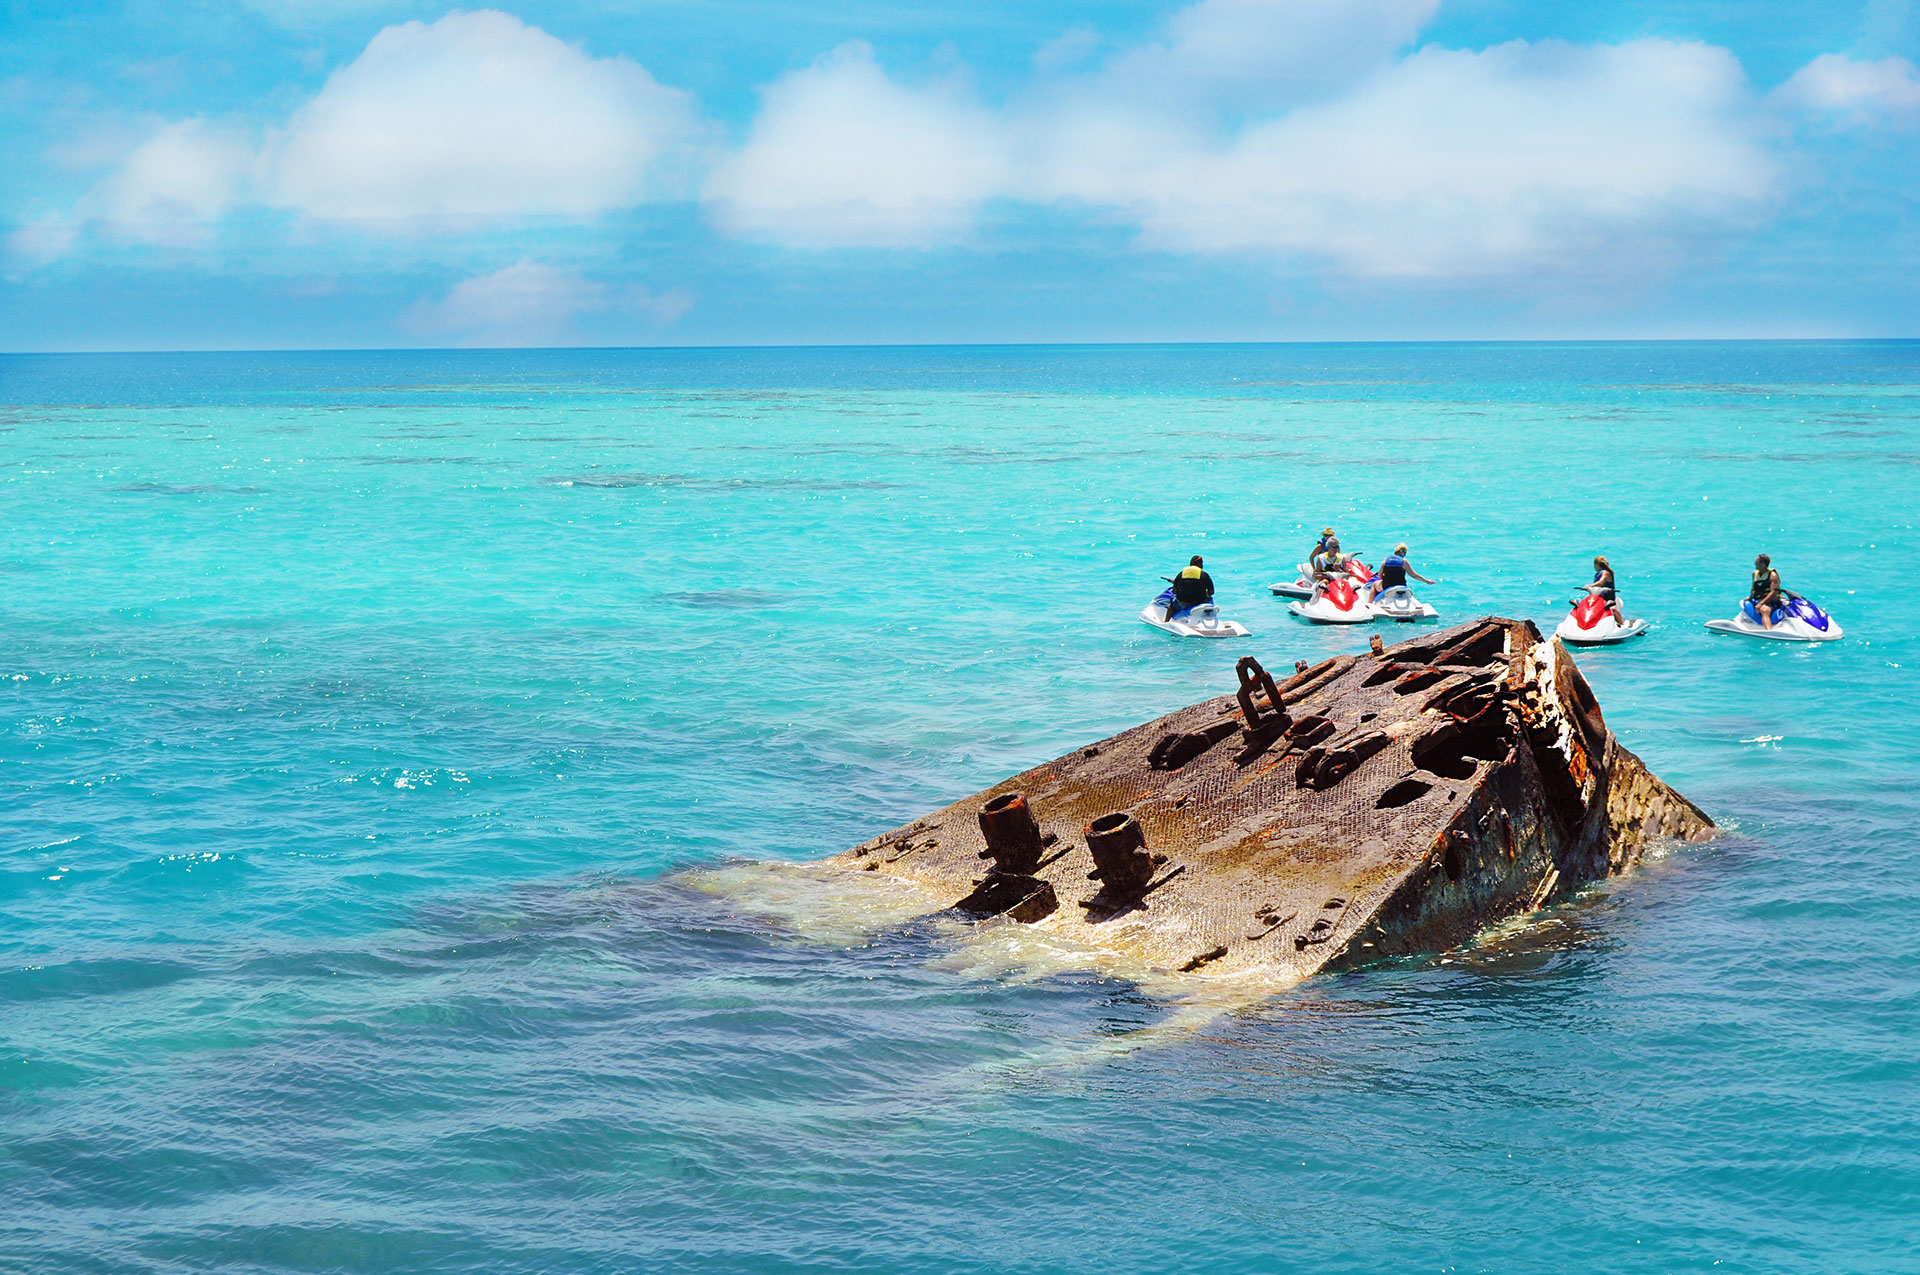 Bermuda Shipwreck; Courtesy of orangecrush/Shutterstock.com